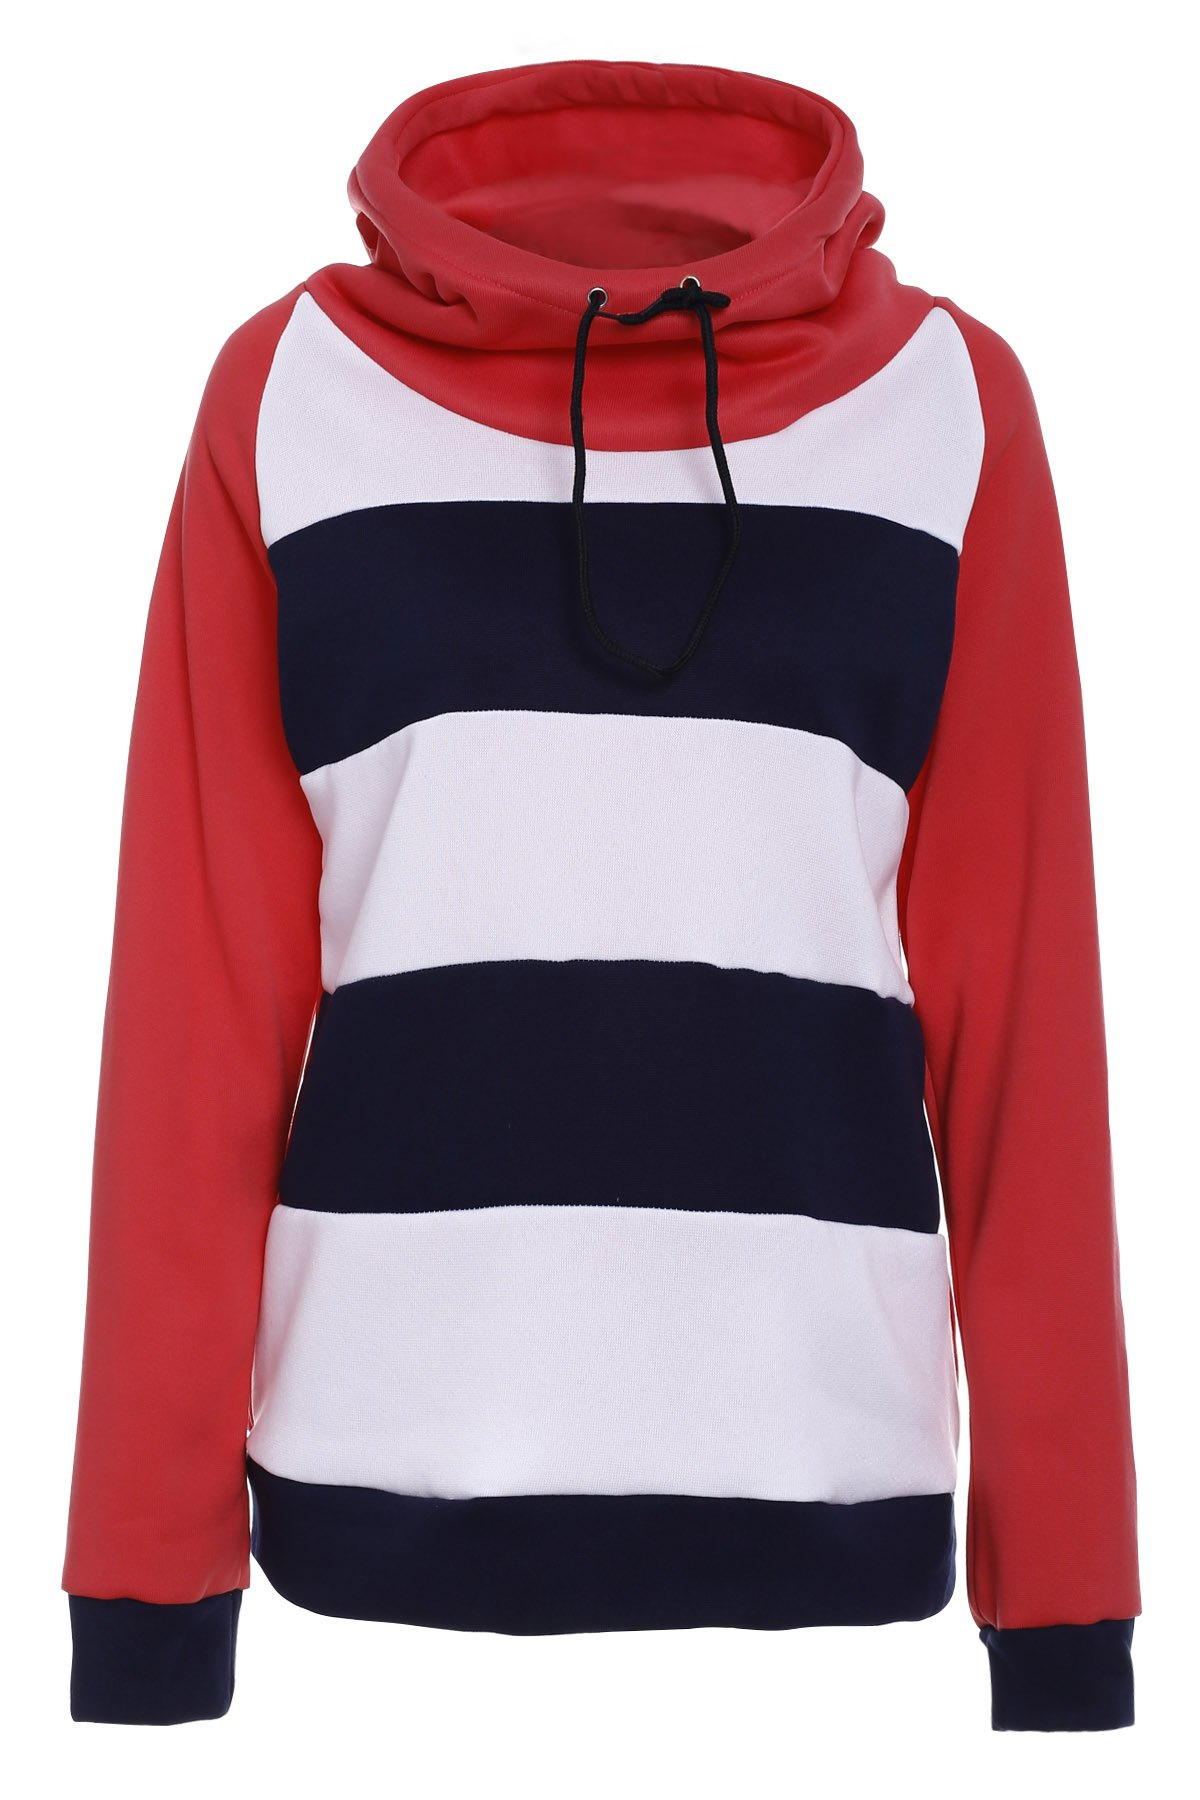 Casual Women's Hooded Long Sleeve Drawstring Striped Hoodie - RED S